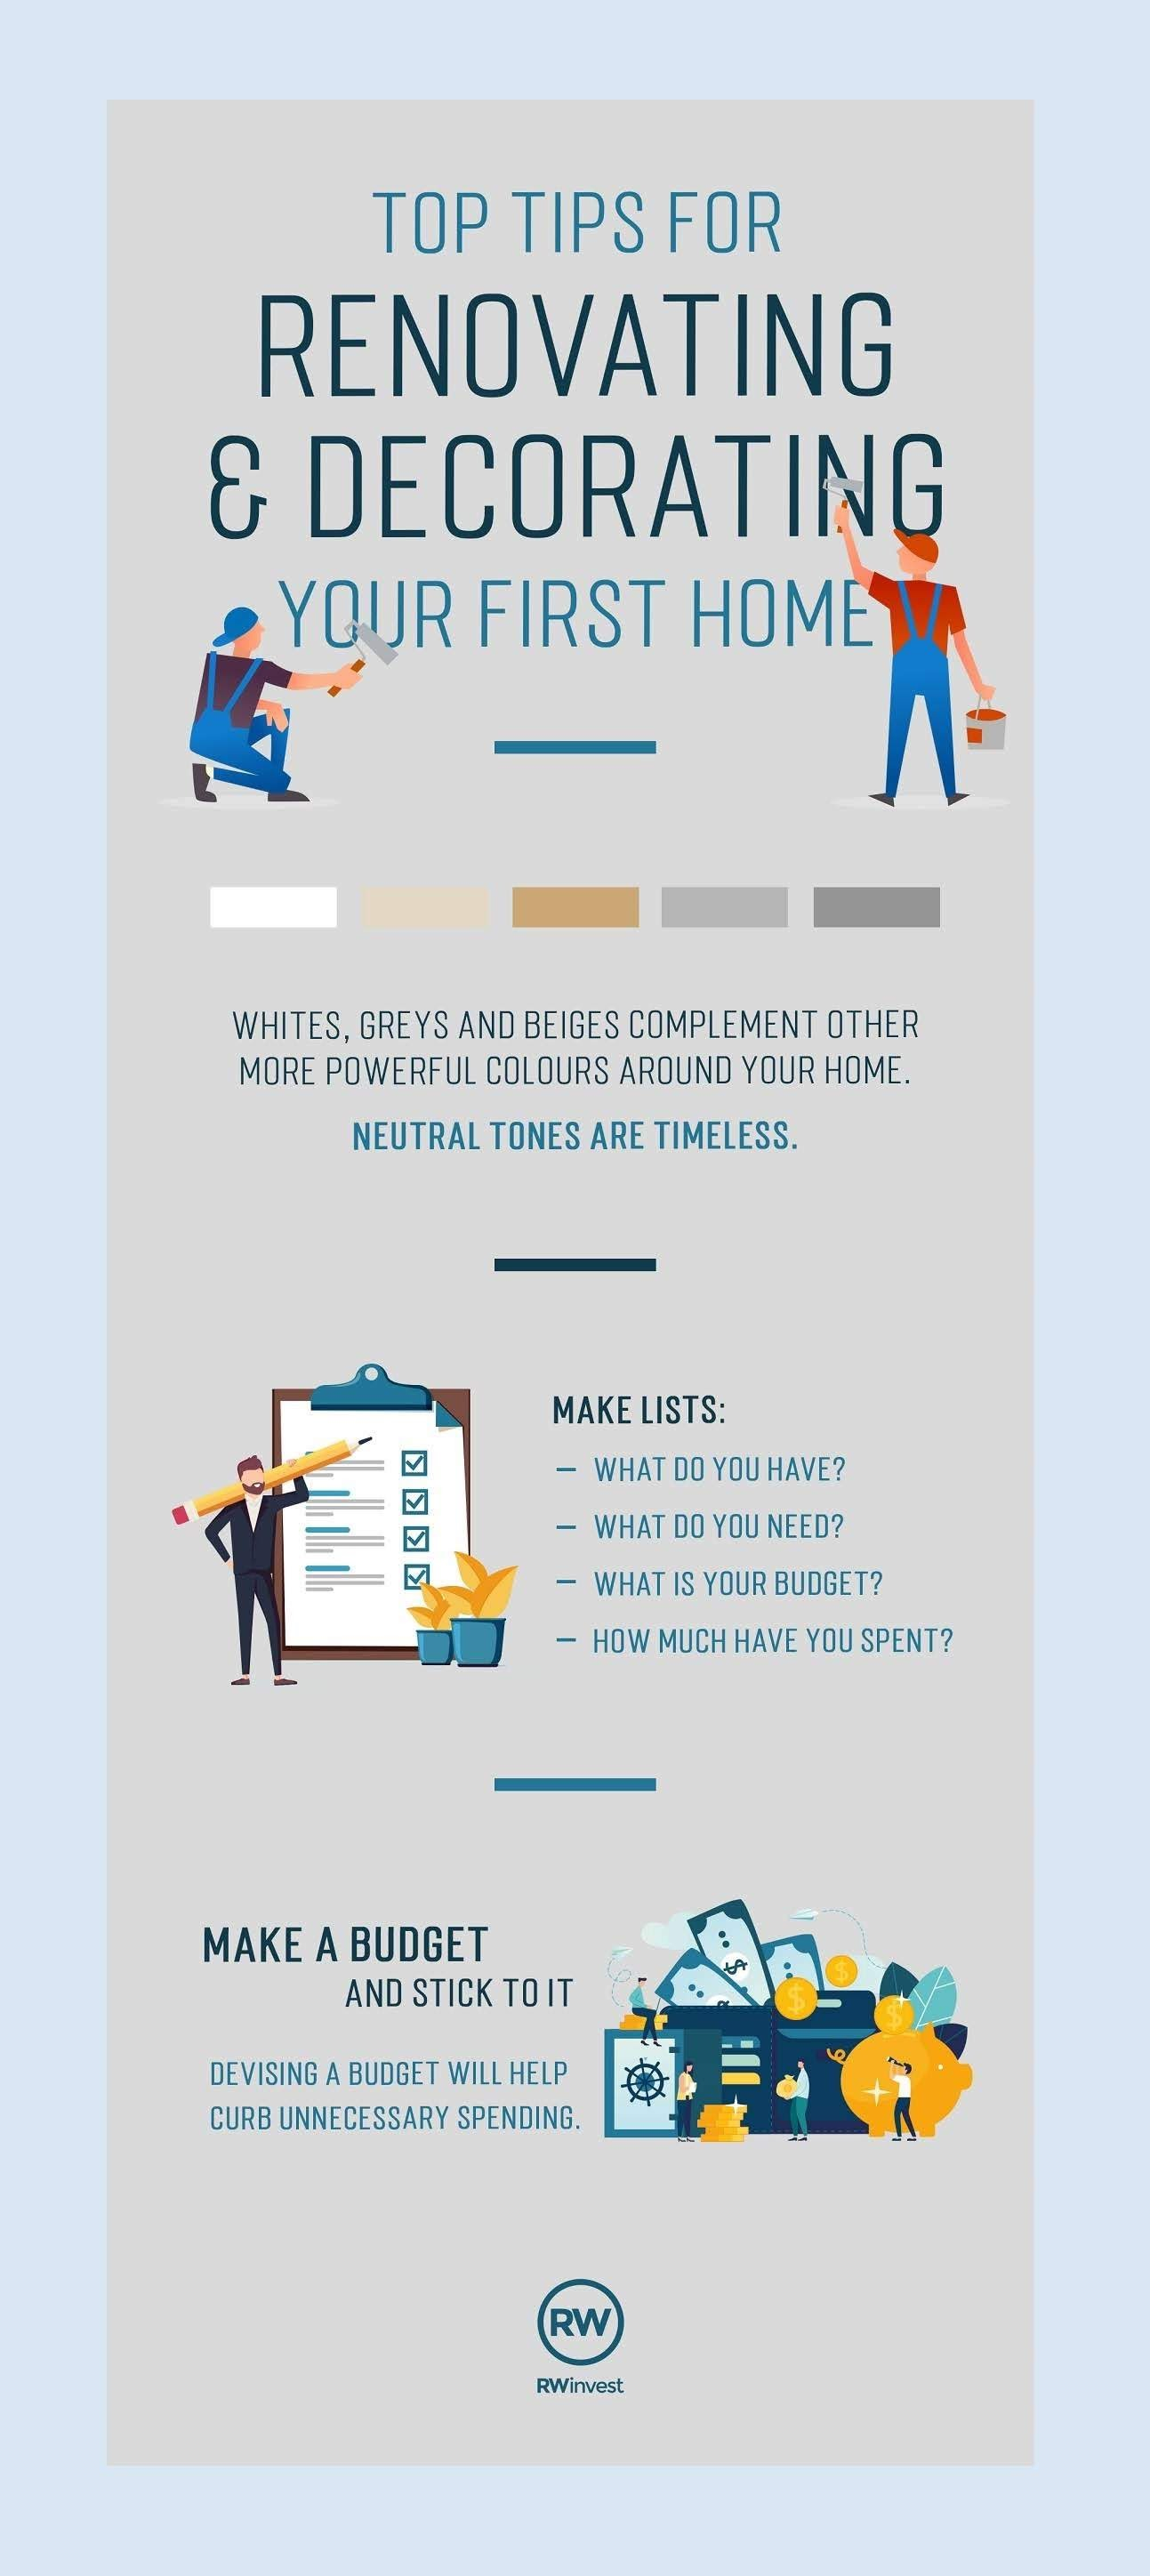 Tips For Renovating & Decorating Your First Home #infographic